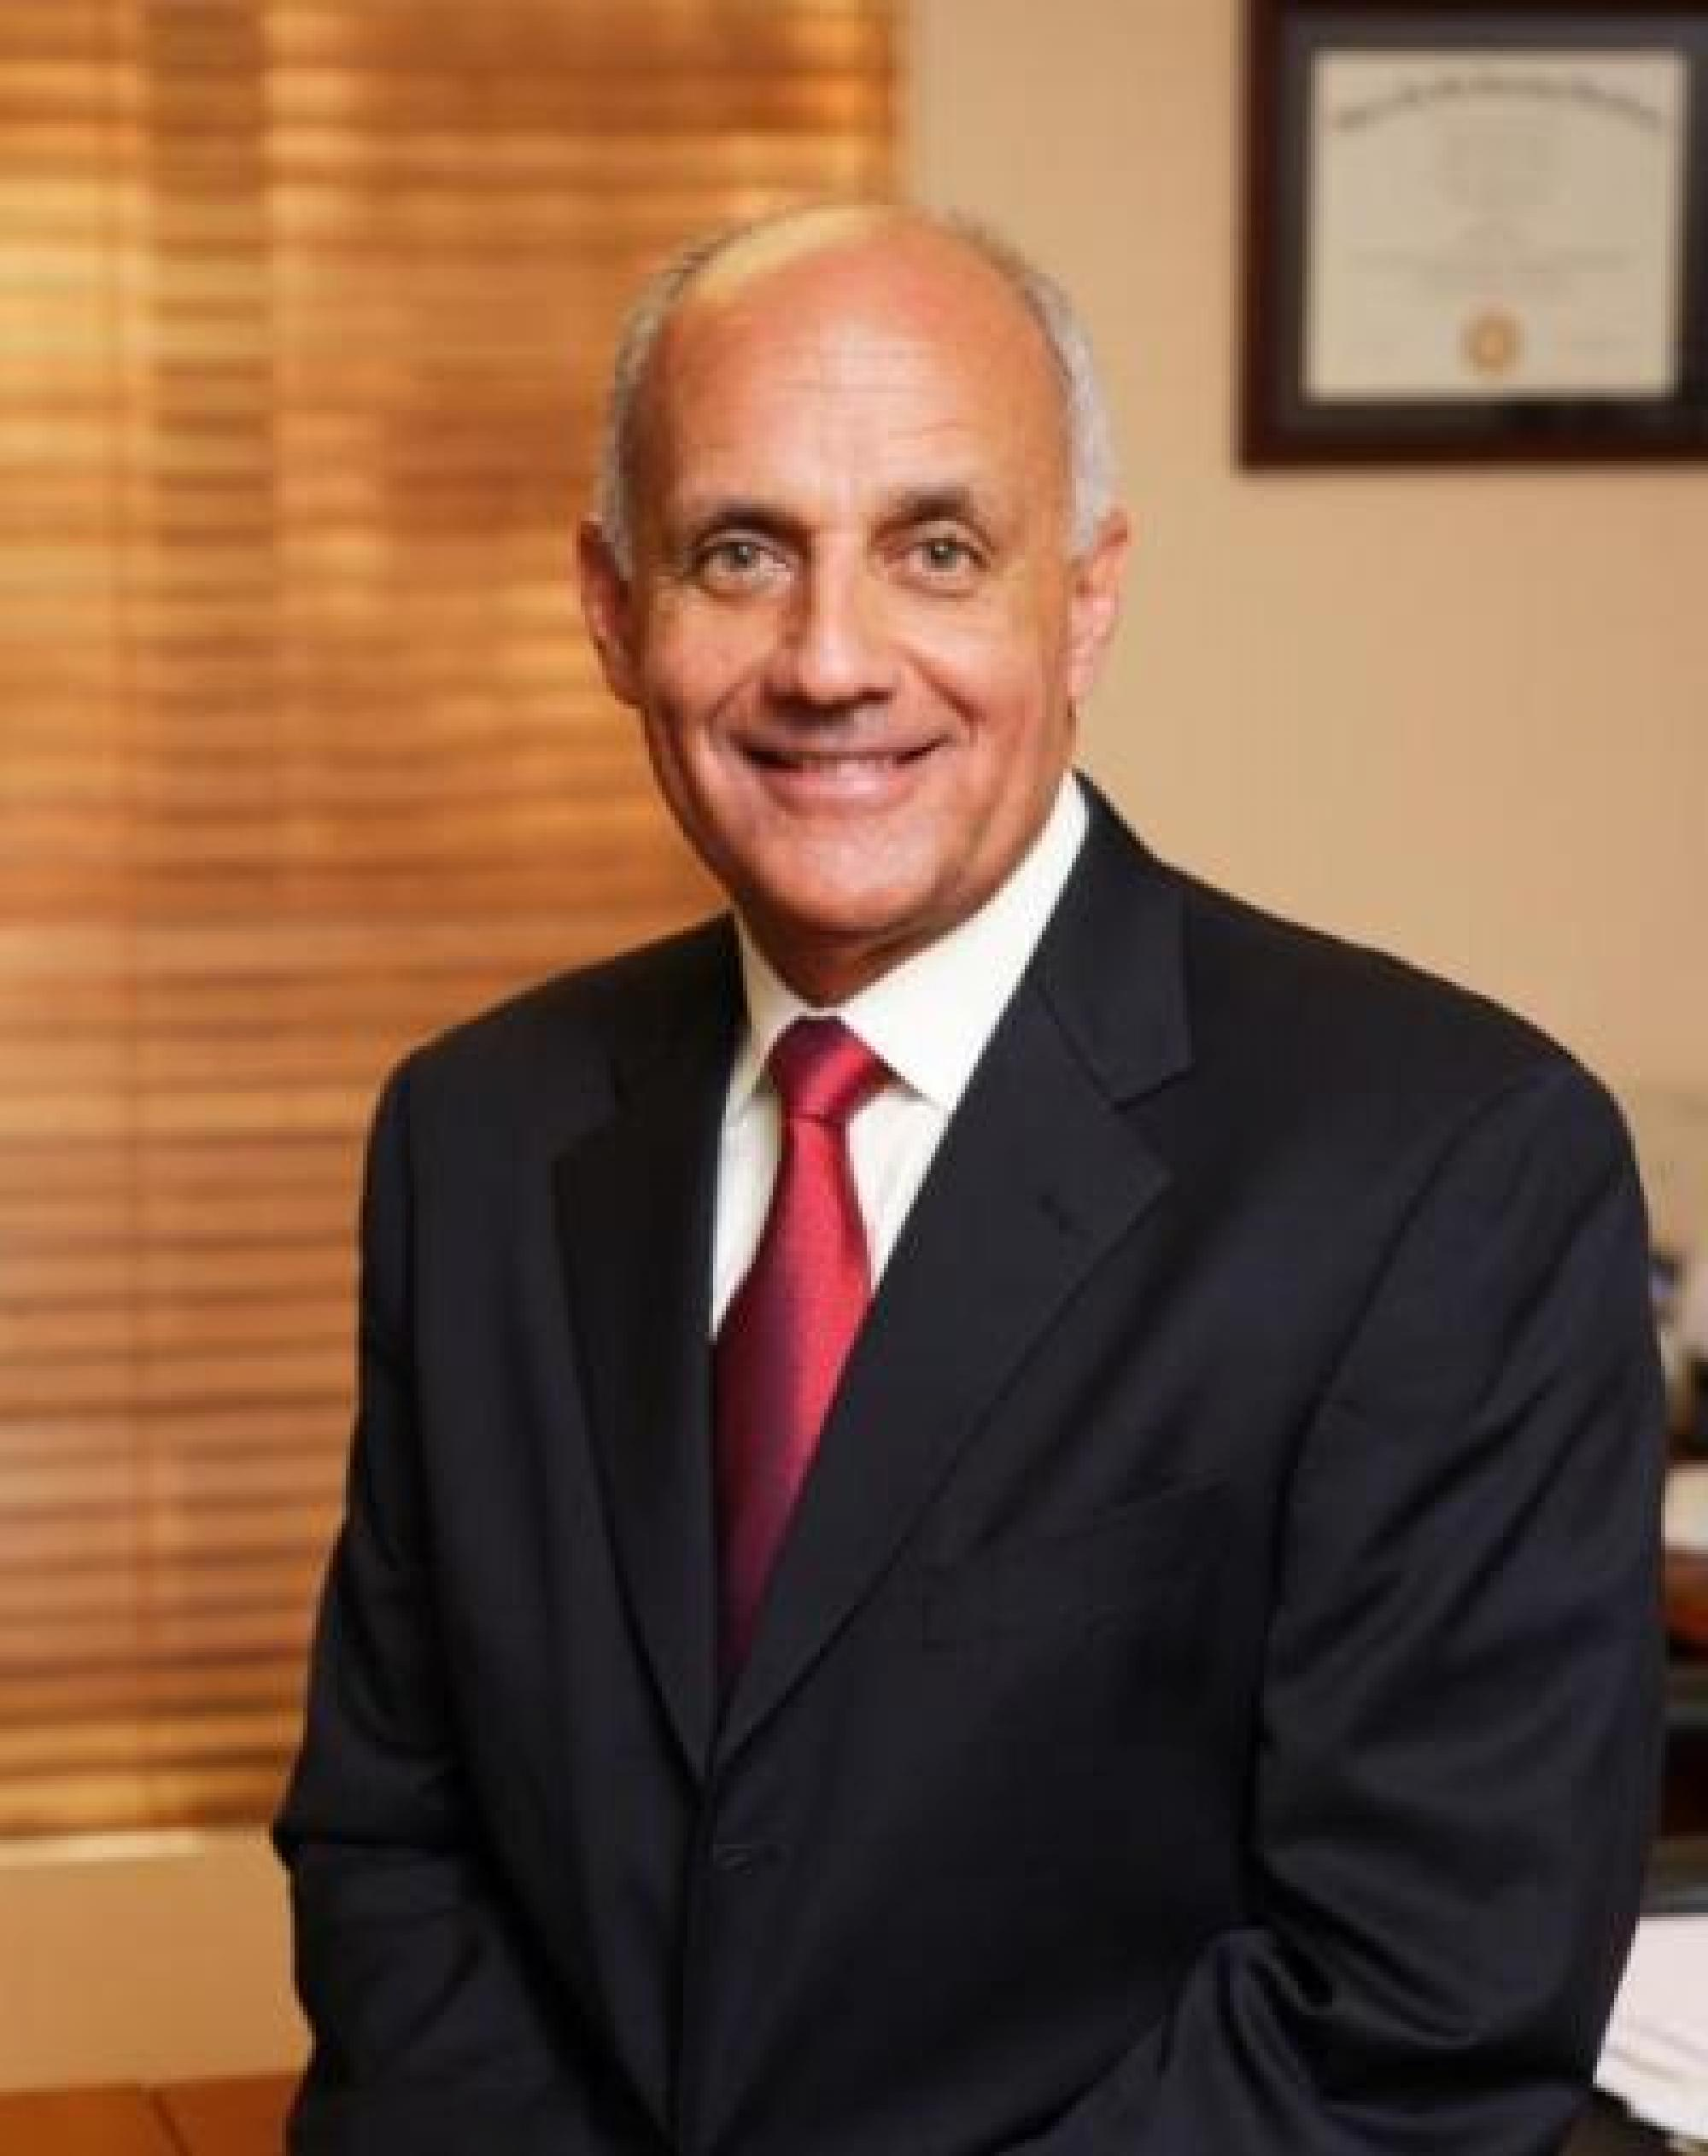 17th Surgeon General of the United States Dr. Richard Carmona